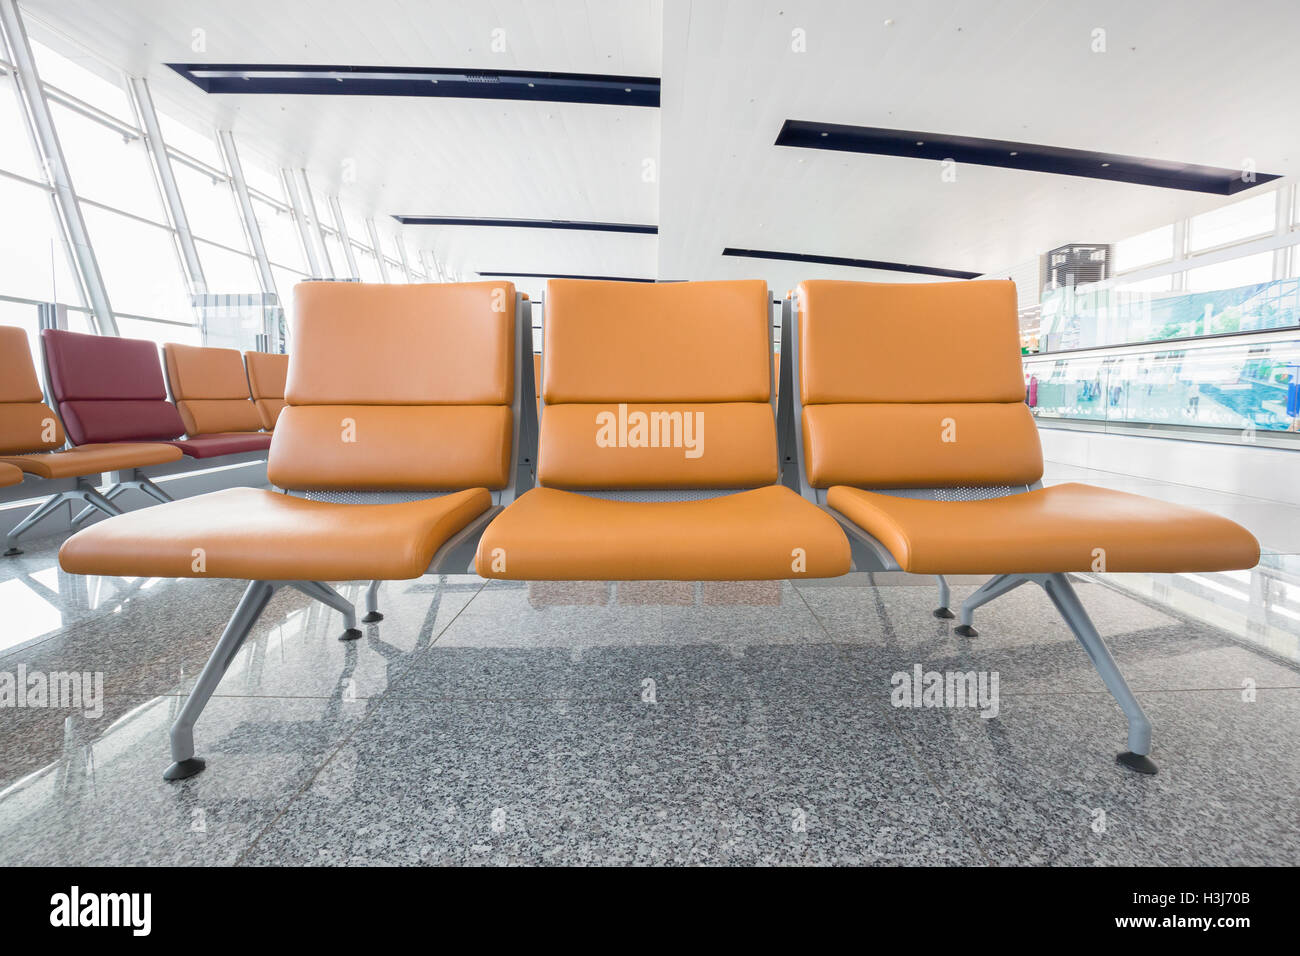 Close Focus On Three Leather Chairs In Orange Color Which Connected  Together As A Bench On Shiny Marble Floor In White Building